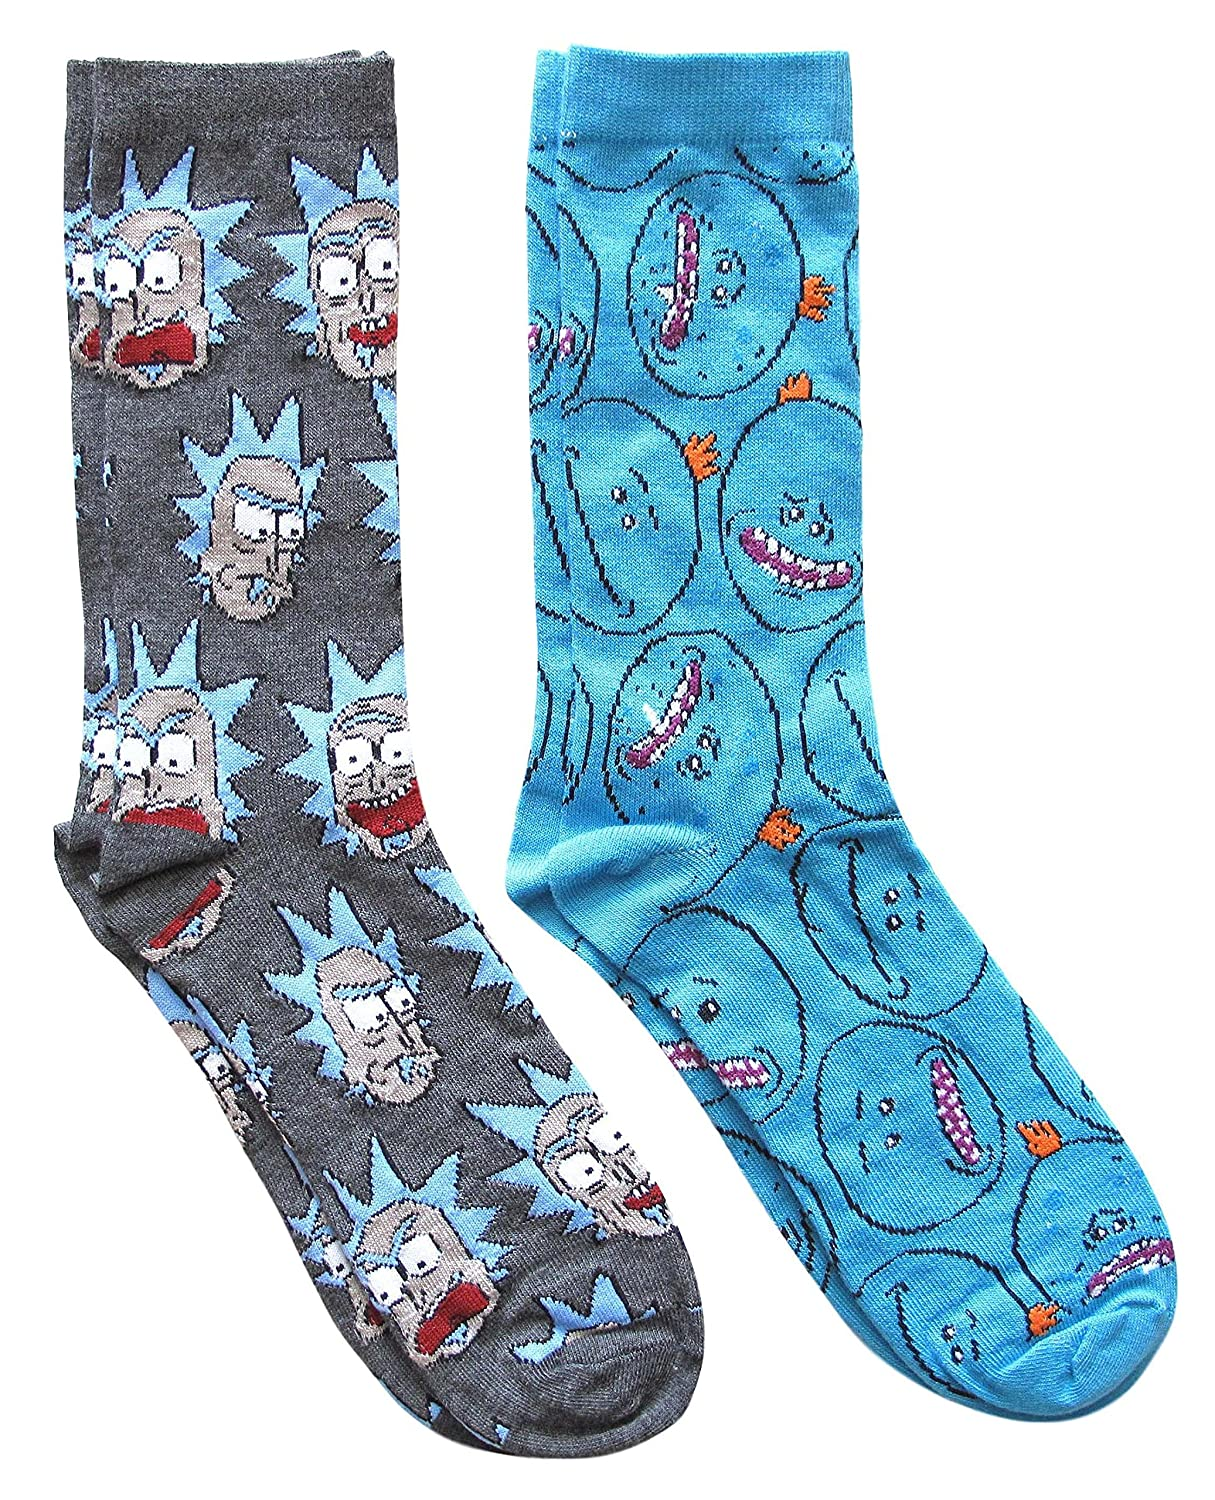 Rick and Morty Mr. Meeseek's Pattern Men's Crew Socks 2 Pair Pack Shoe Size 6-12 SW302